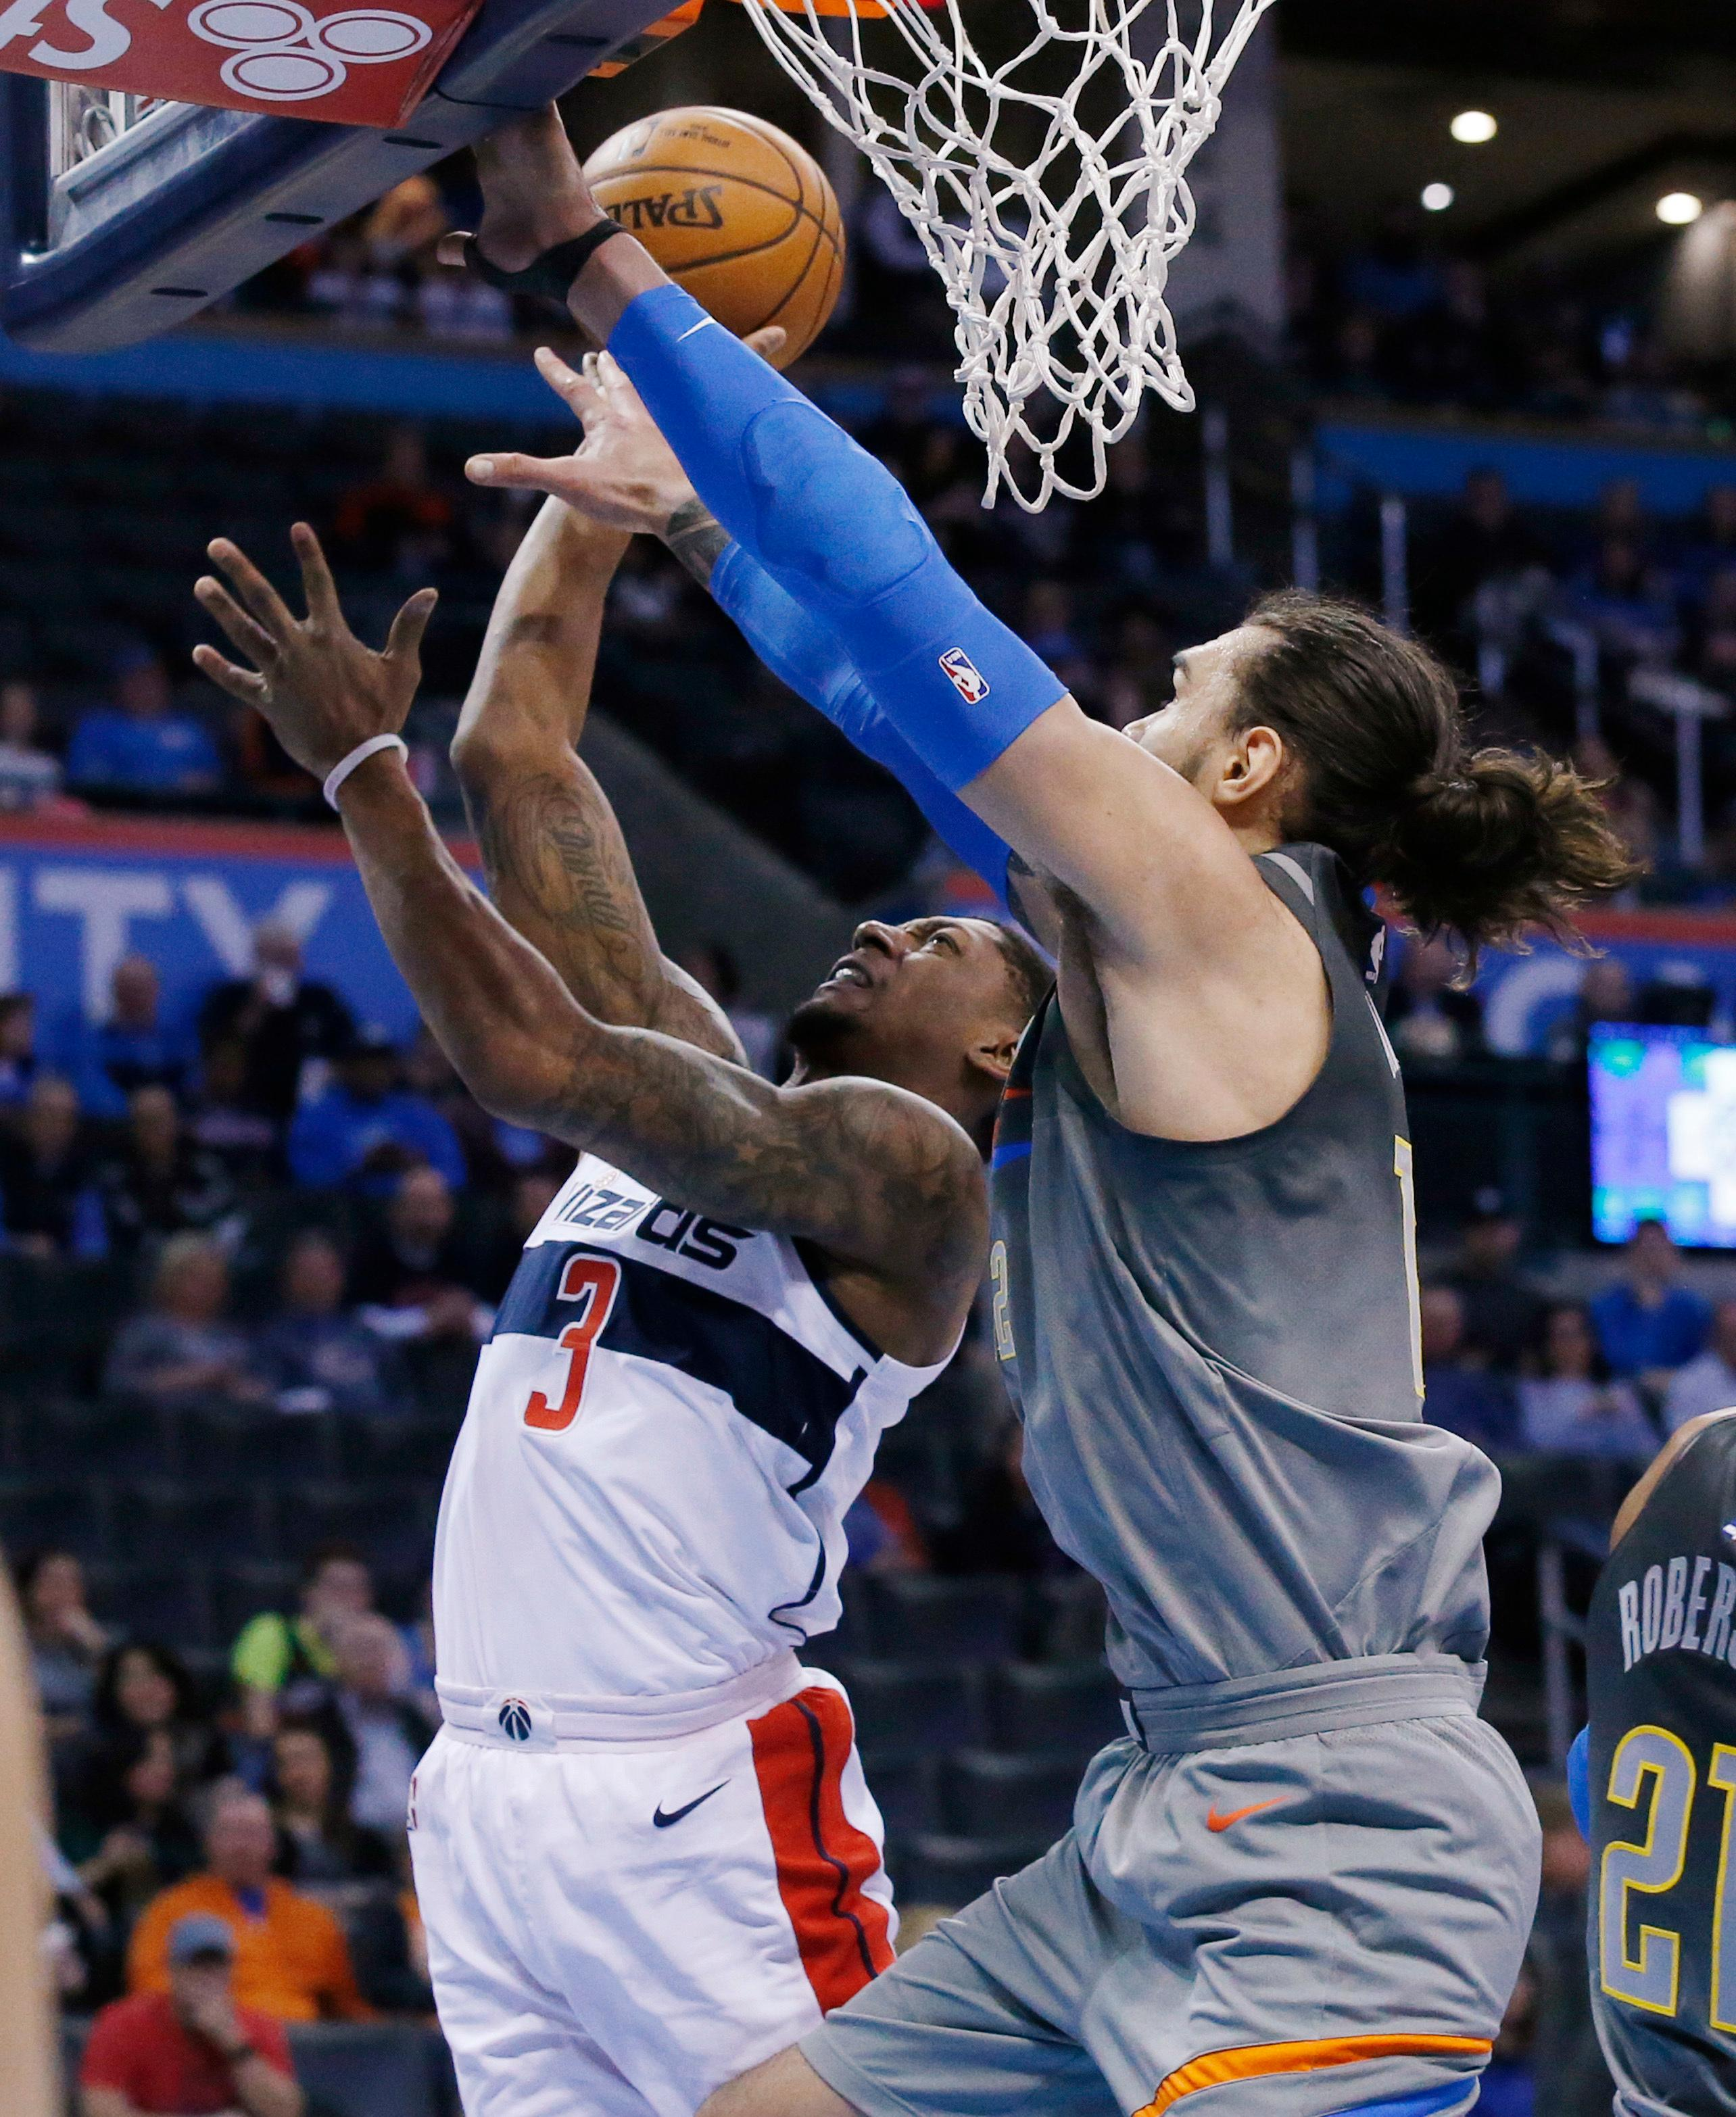 Washington Wizards guard Bradley Beal (3) shoots as Oklahoma City Thunder center Steven Adams, right, defends during the first quarter of an NBA basketball game in Oklahoma City, Thursday, Jan. 25, 2018. (AP Photo/Sue Ogrocki)